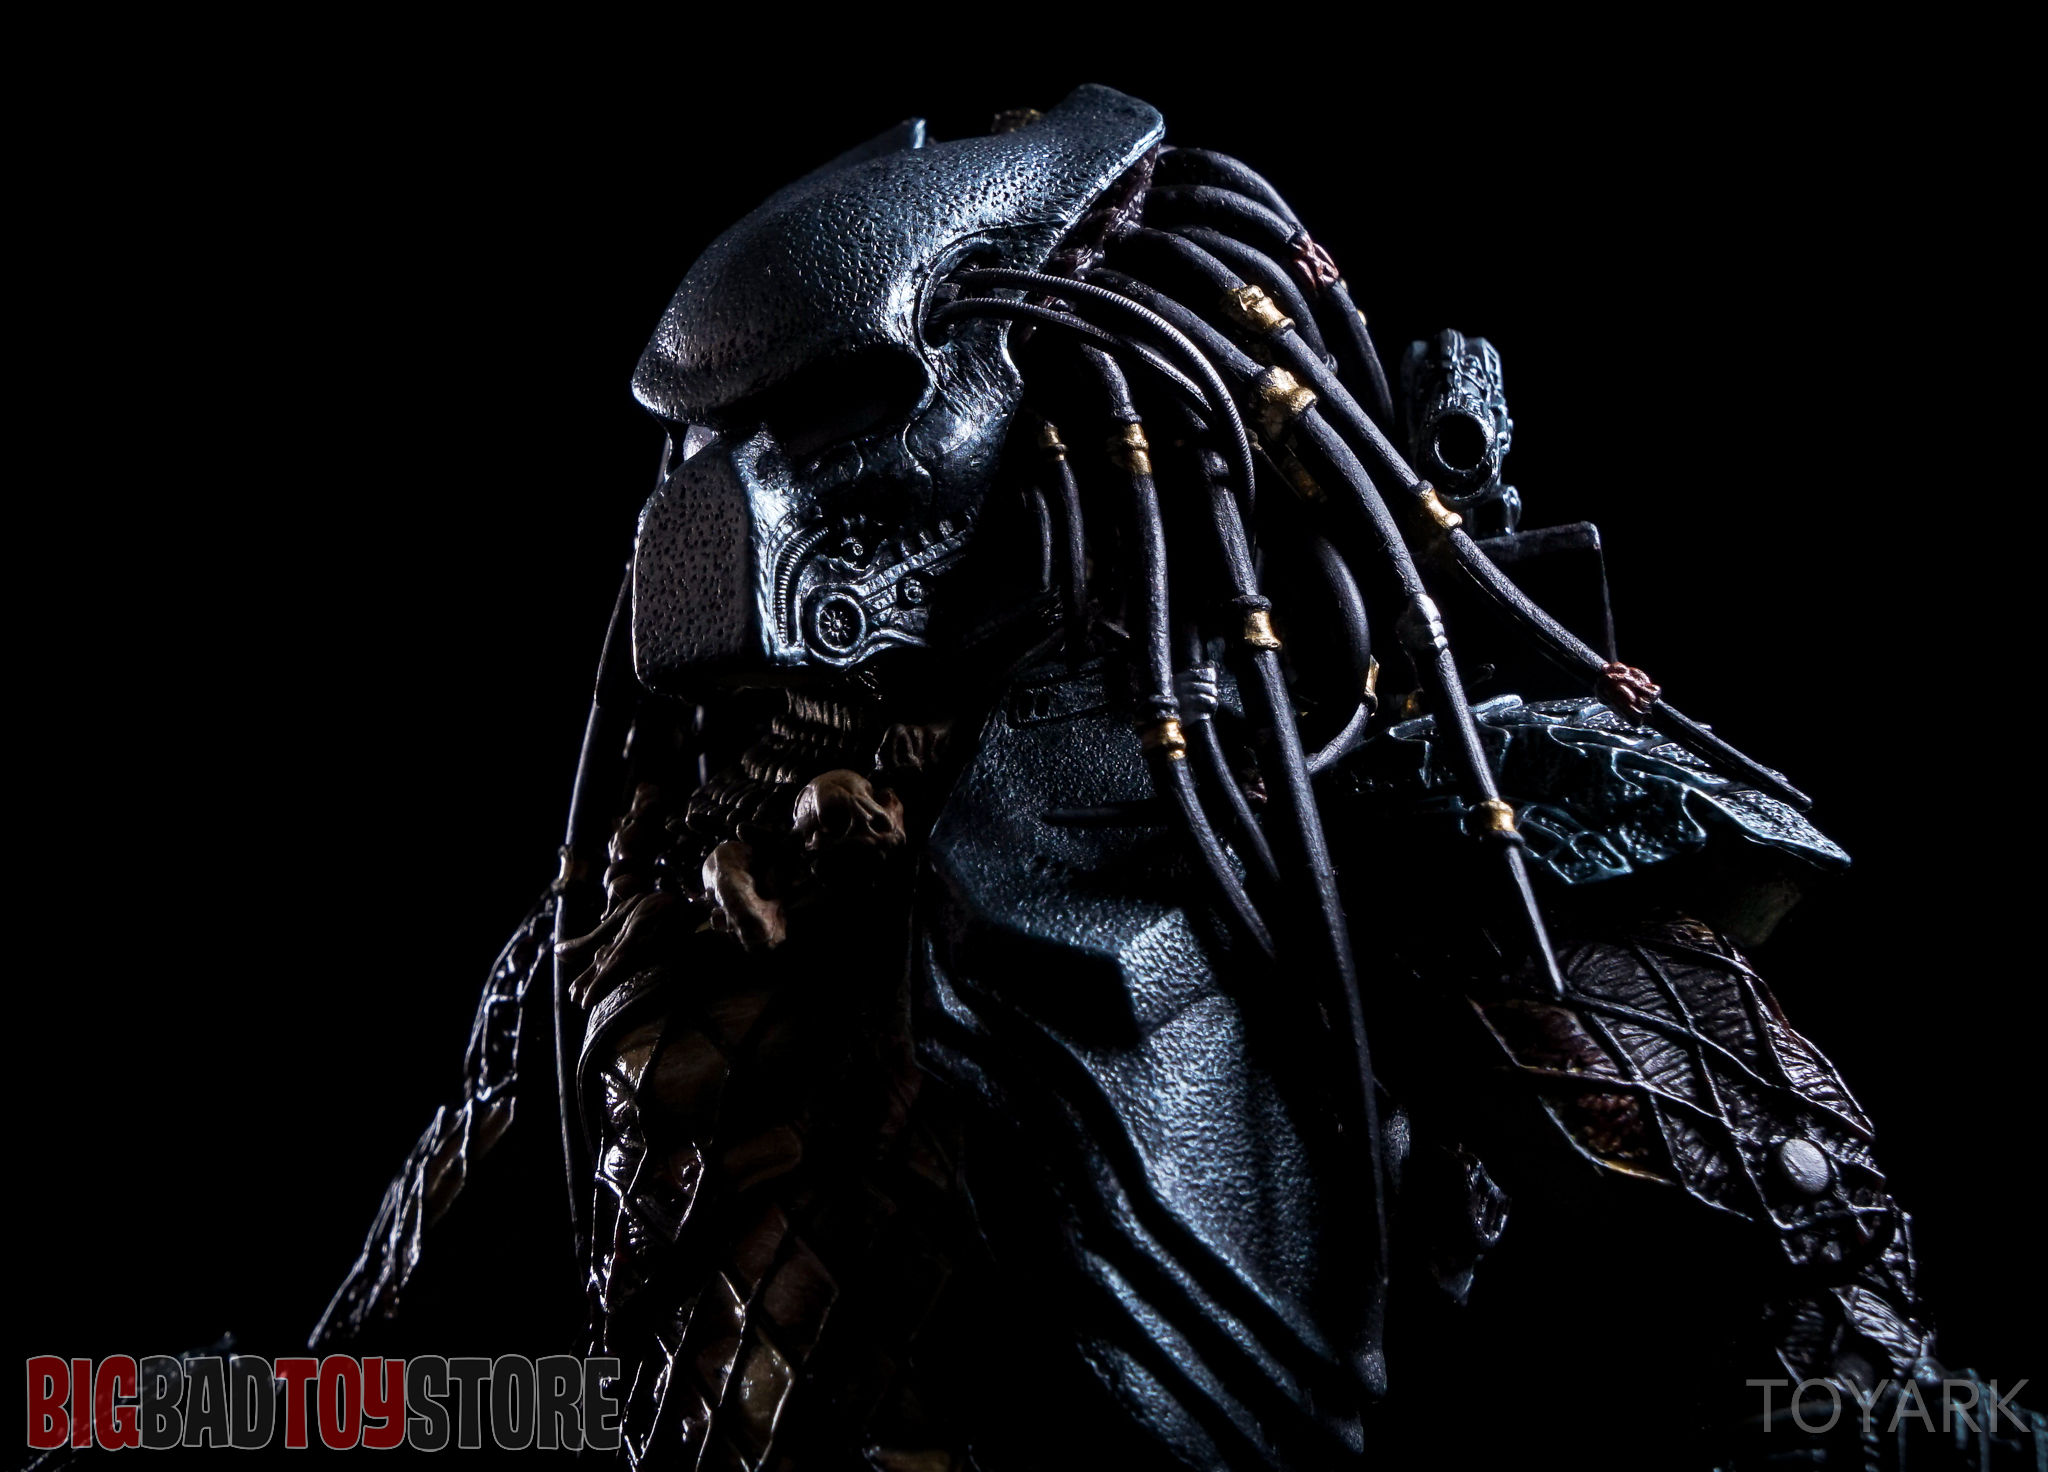 http://news.toyark.com/wp-content/uploads/sites/4/2016/05/NECA-Predator-Series-15-AvP-072.jpg